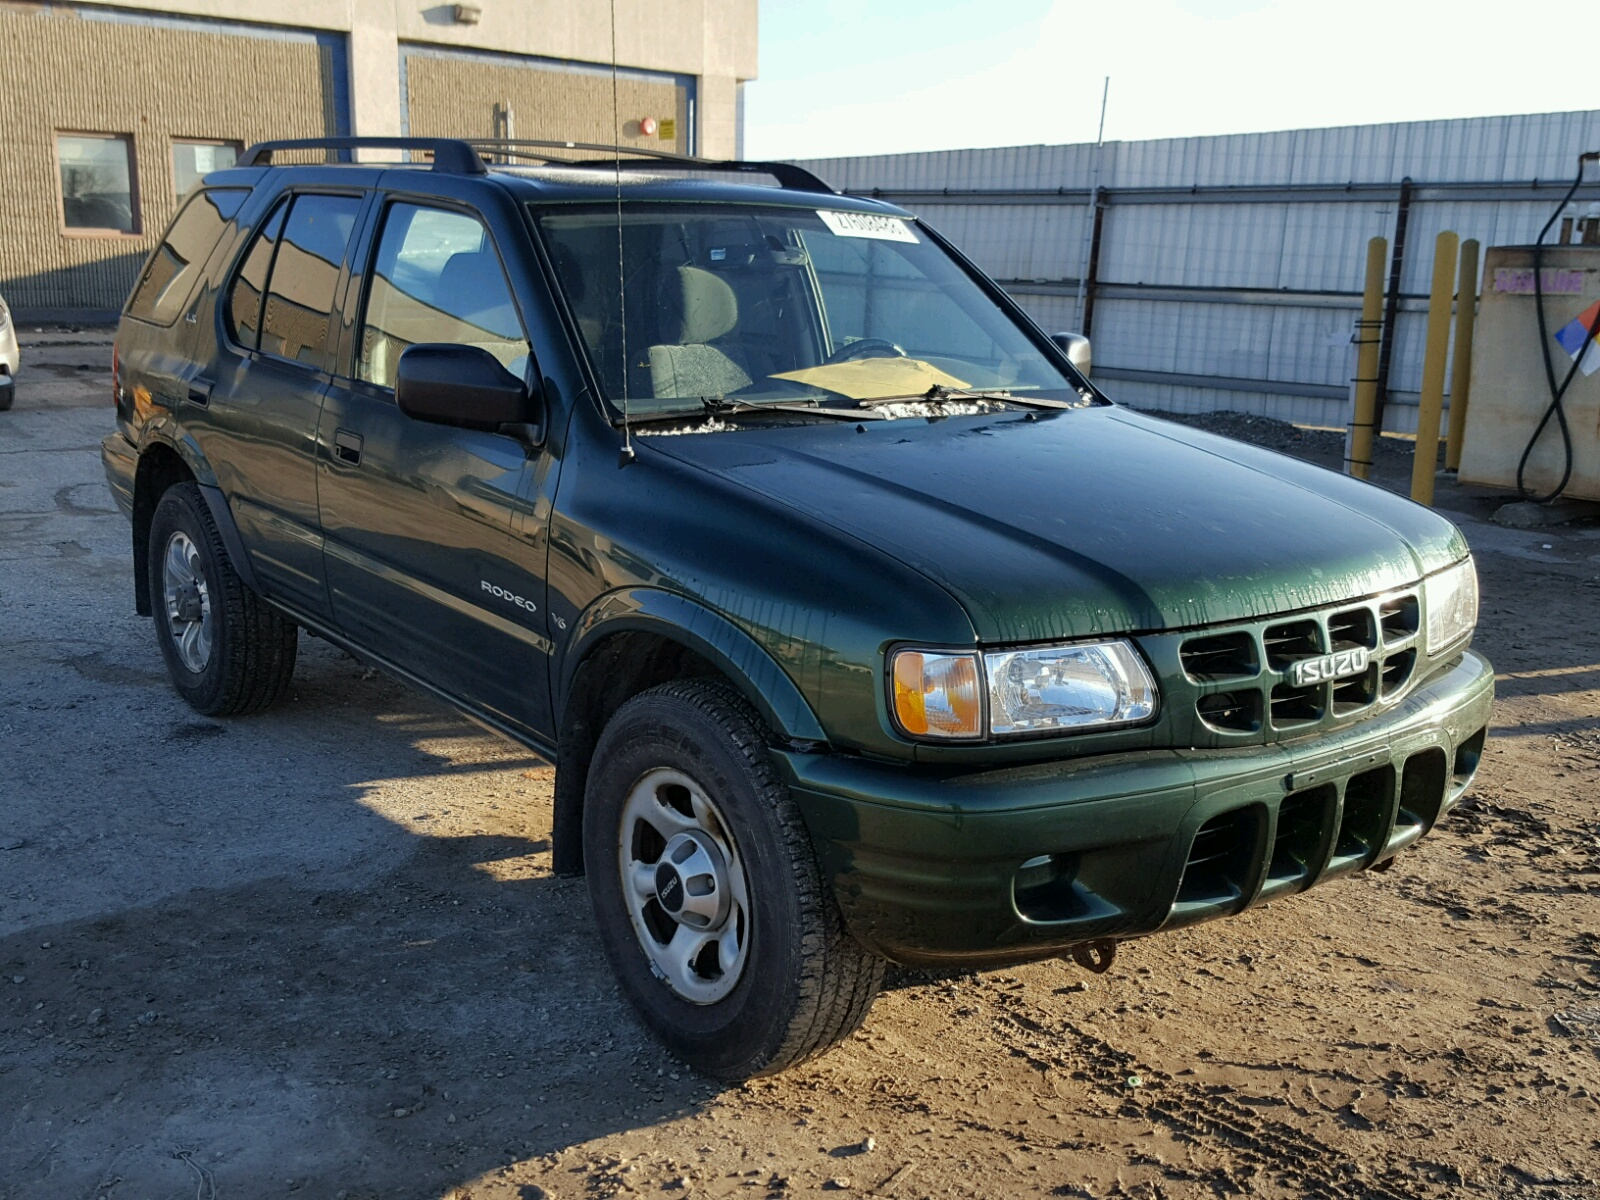 2017 Isuzu Rodeo Best New Cars For 2018 1999 Ls Auto Auction Ended On Vin Jalc4w160h7003201 Npr In Ca